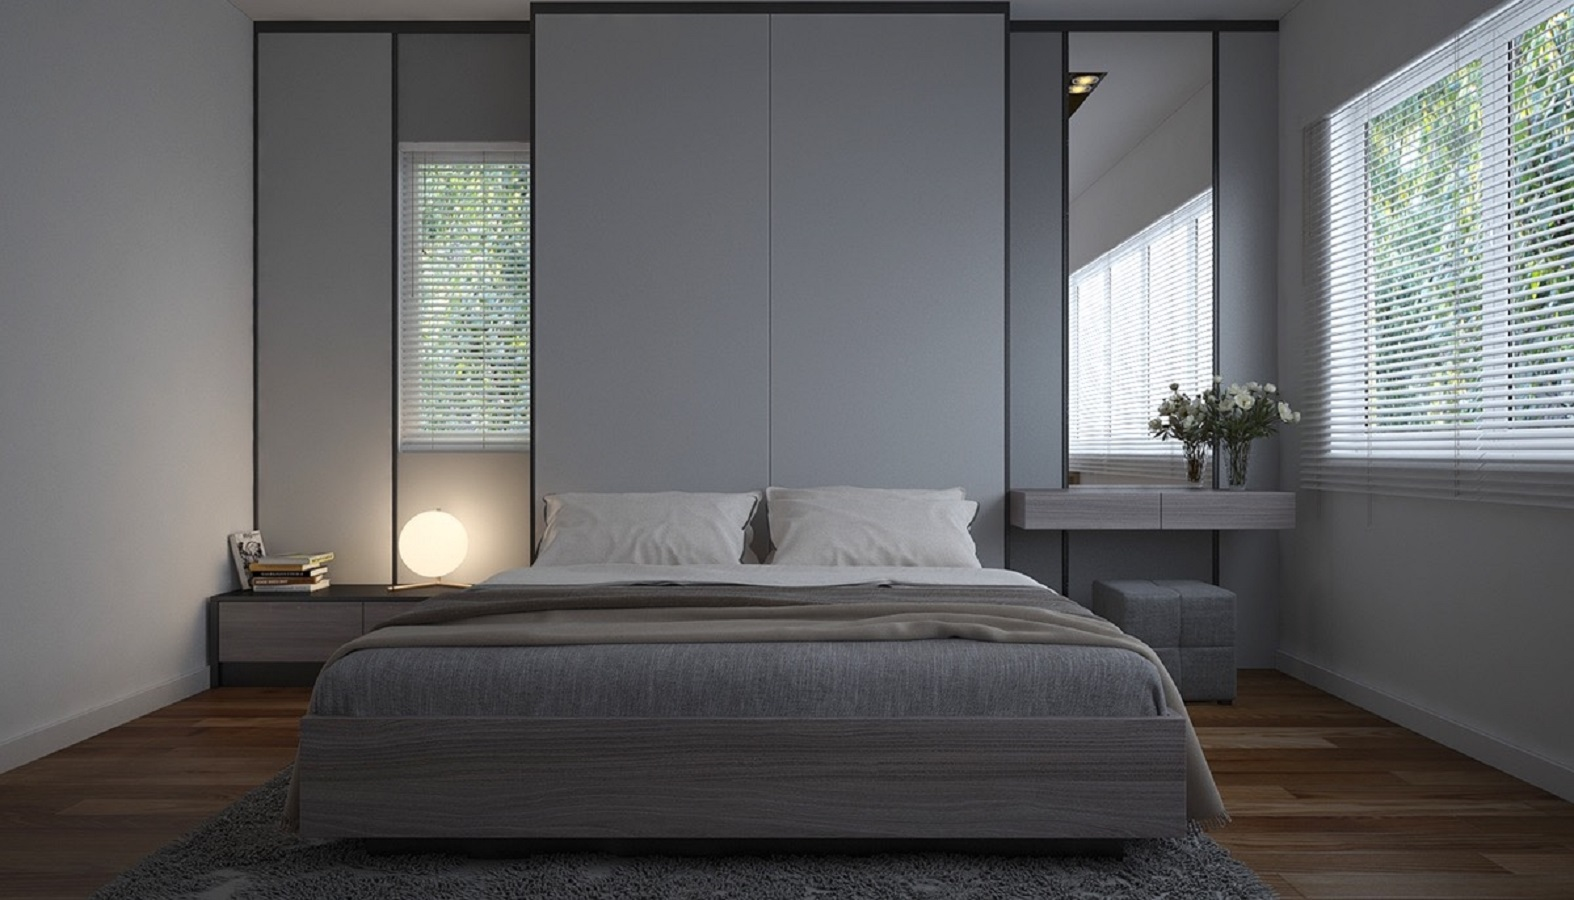 Greyscale bedroom Charismatic Minimalist Bedroom Ideas That Low On Clutter But Big On Style